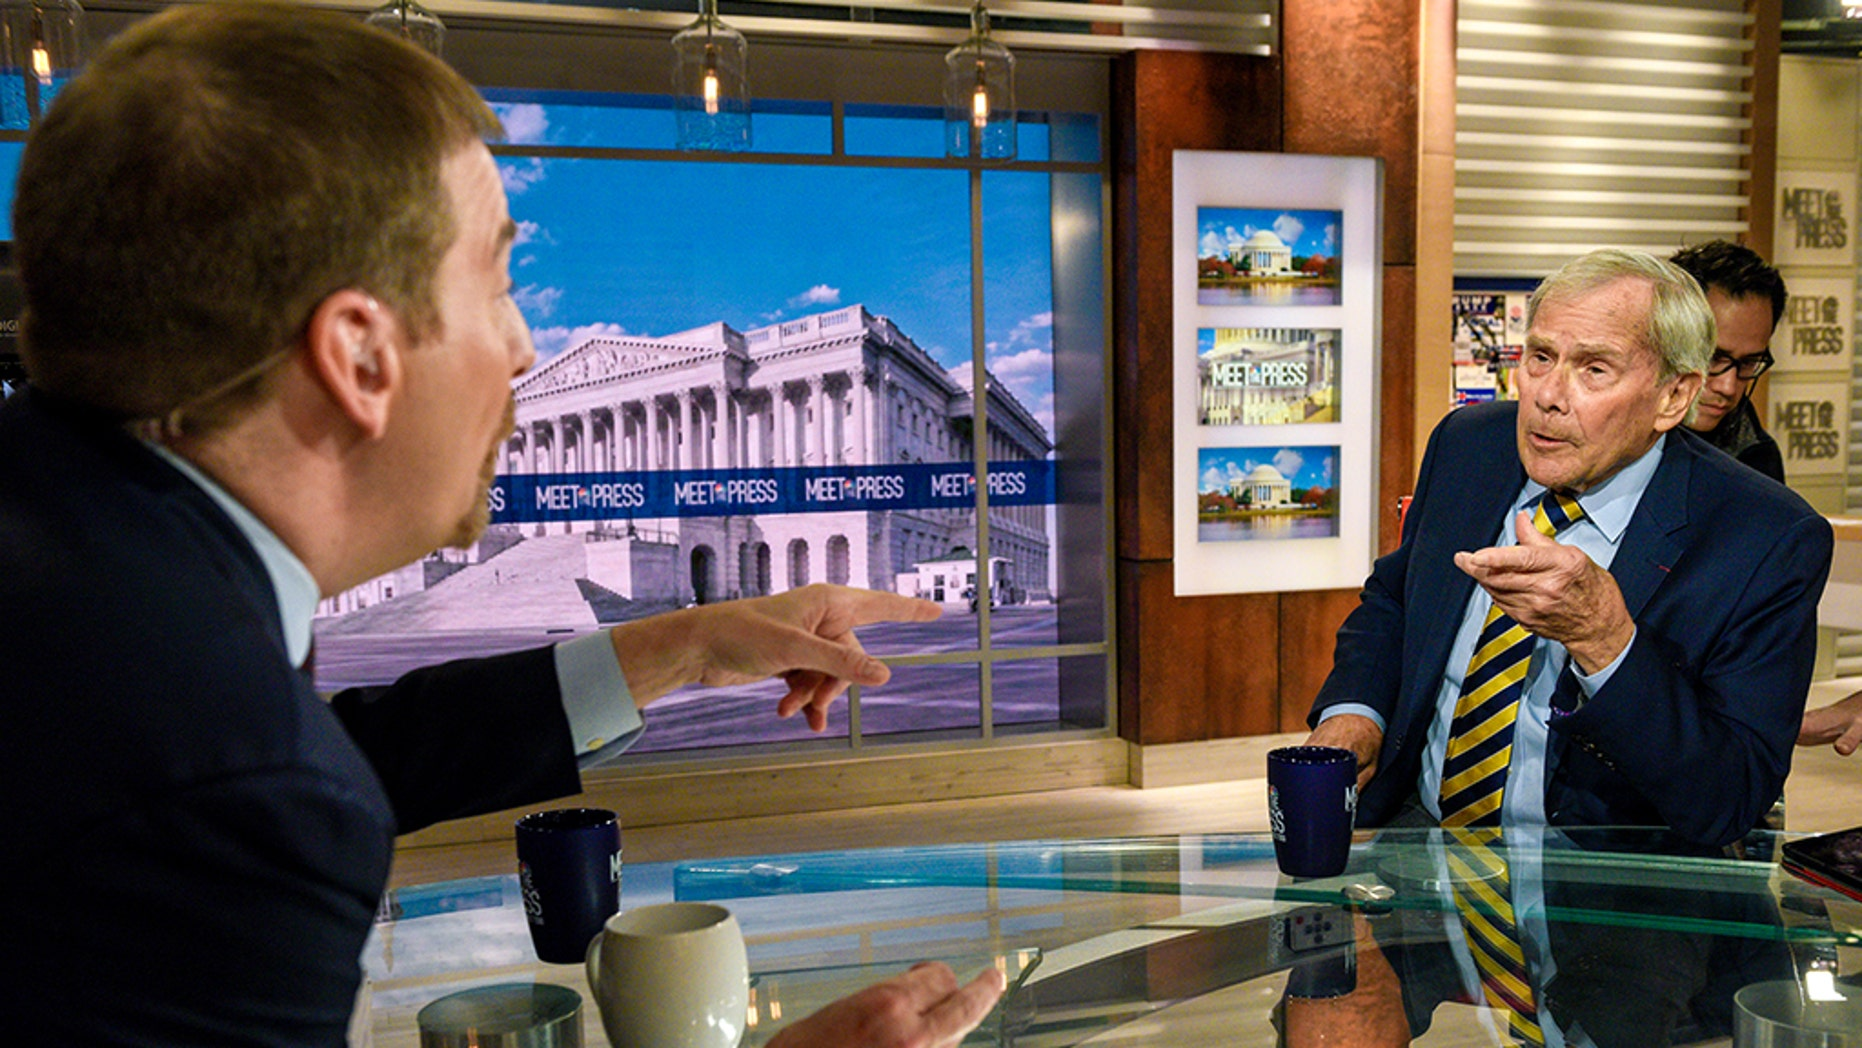 Tom Brokaw, right, backtracked from remarks he gave on